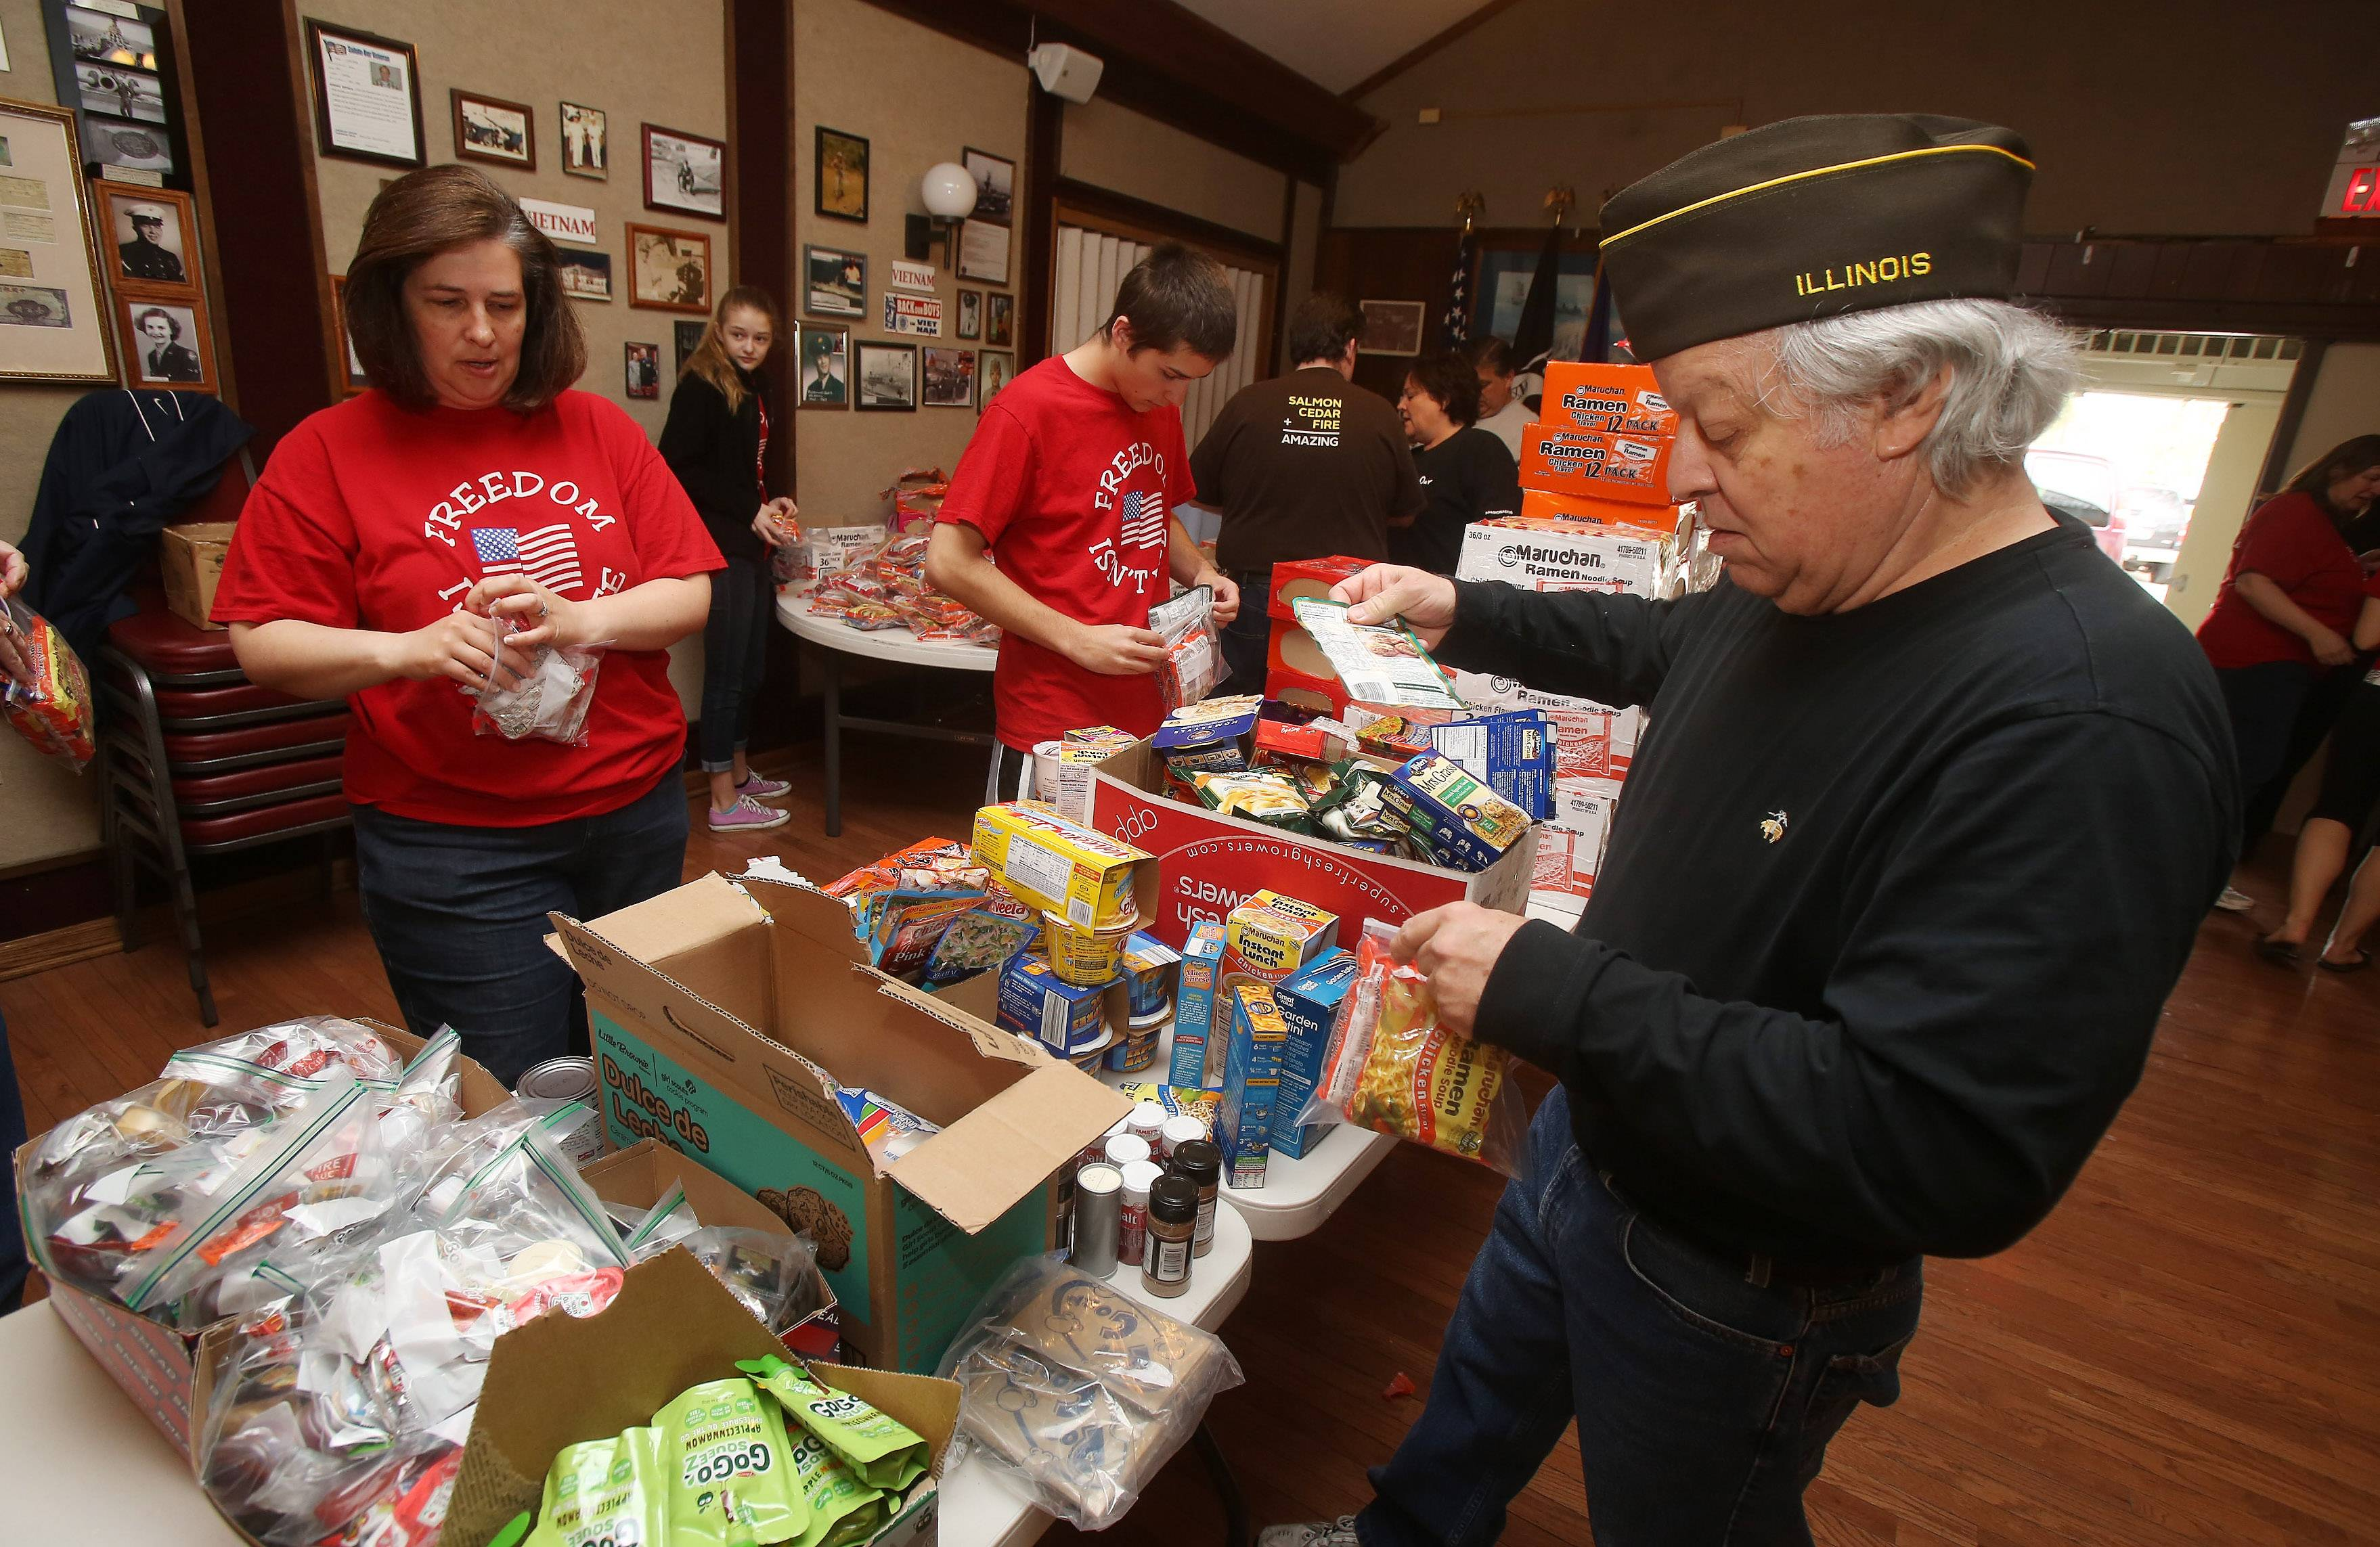 Marybeth Buck of Arlington Heights, left, and her son Matthew, 16, with Roger Santagato of VFW Post 981 join family and friends of fallen Arlington Heights Marine James Stack packing boxes of donations at the Arlington Heights American Legion Hall. The donations will be sent to troops serving overseas.